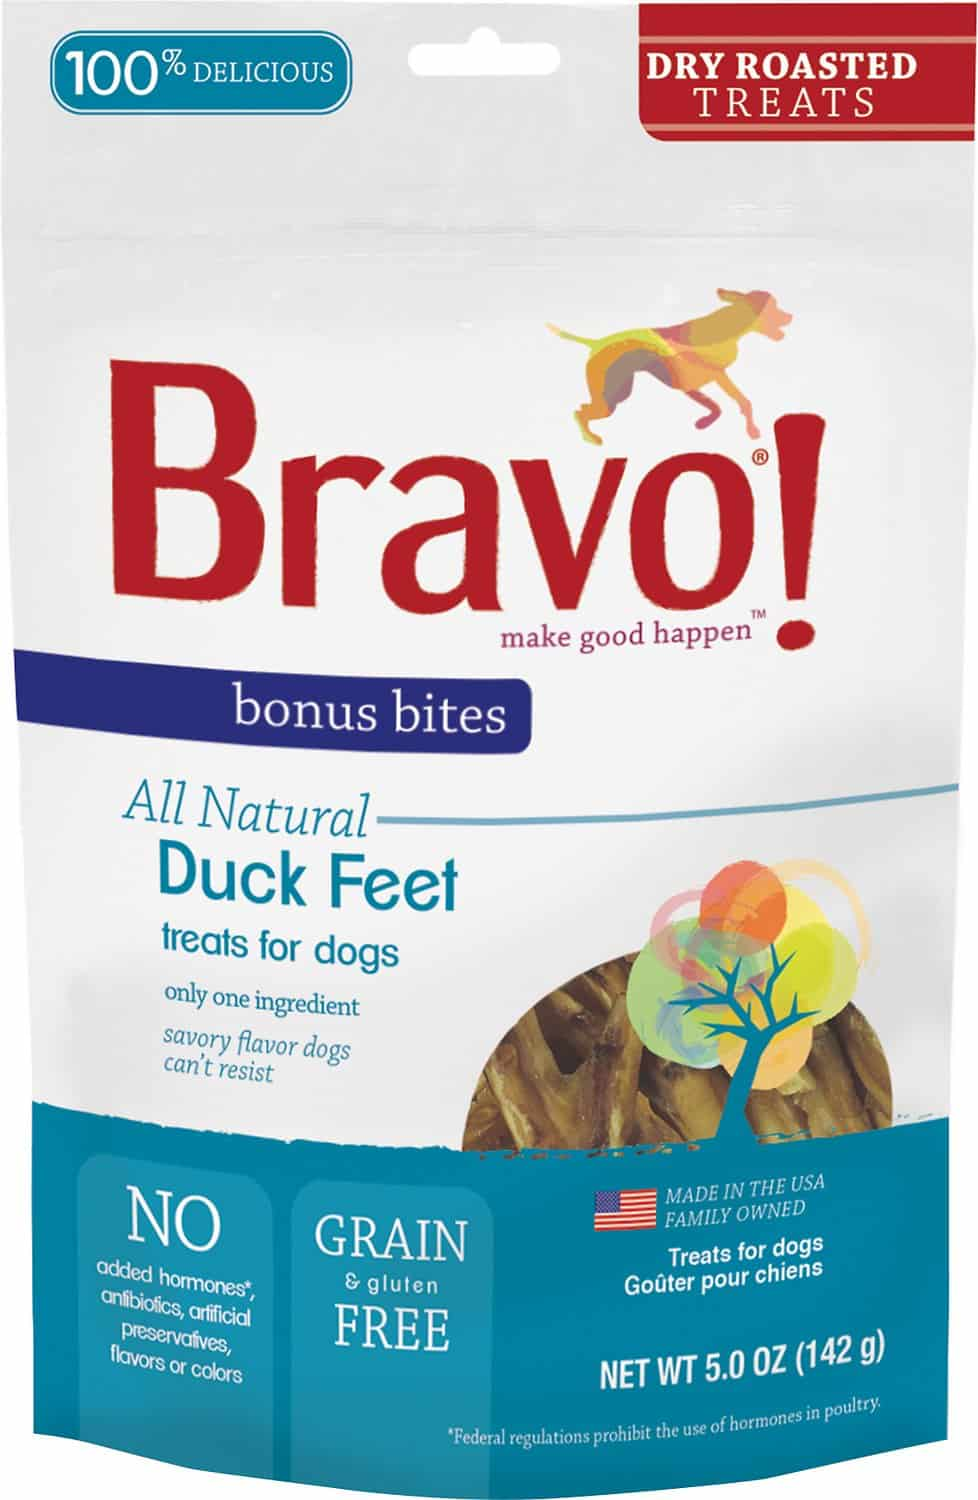 Bravo Dog Food Review 2021: Best Raw Pet Food? 21